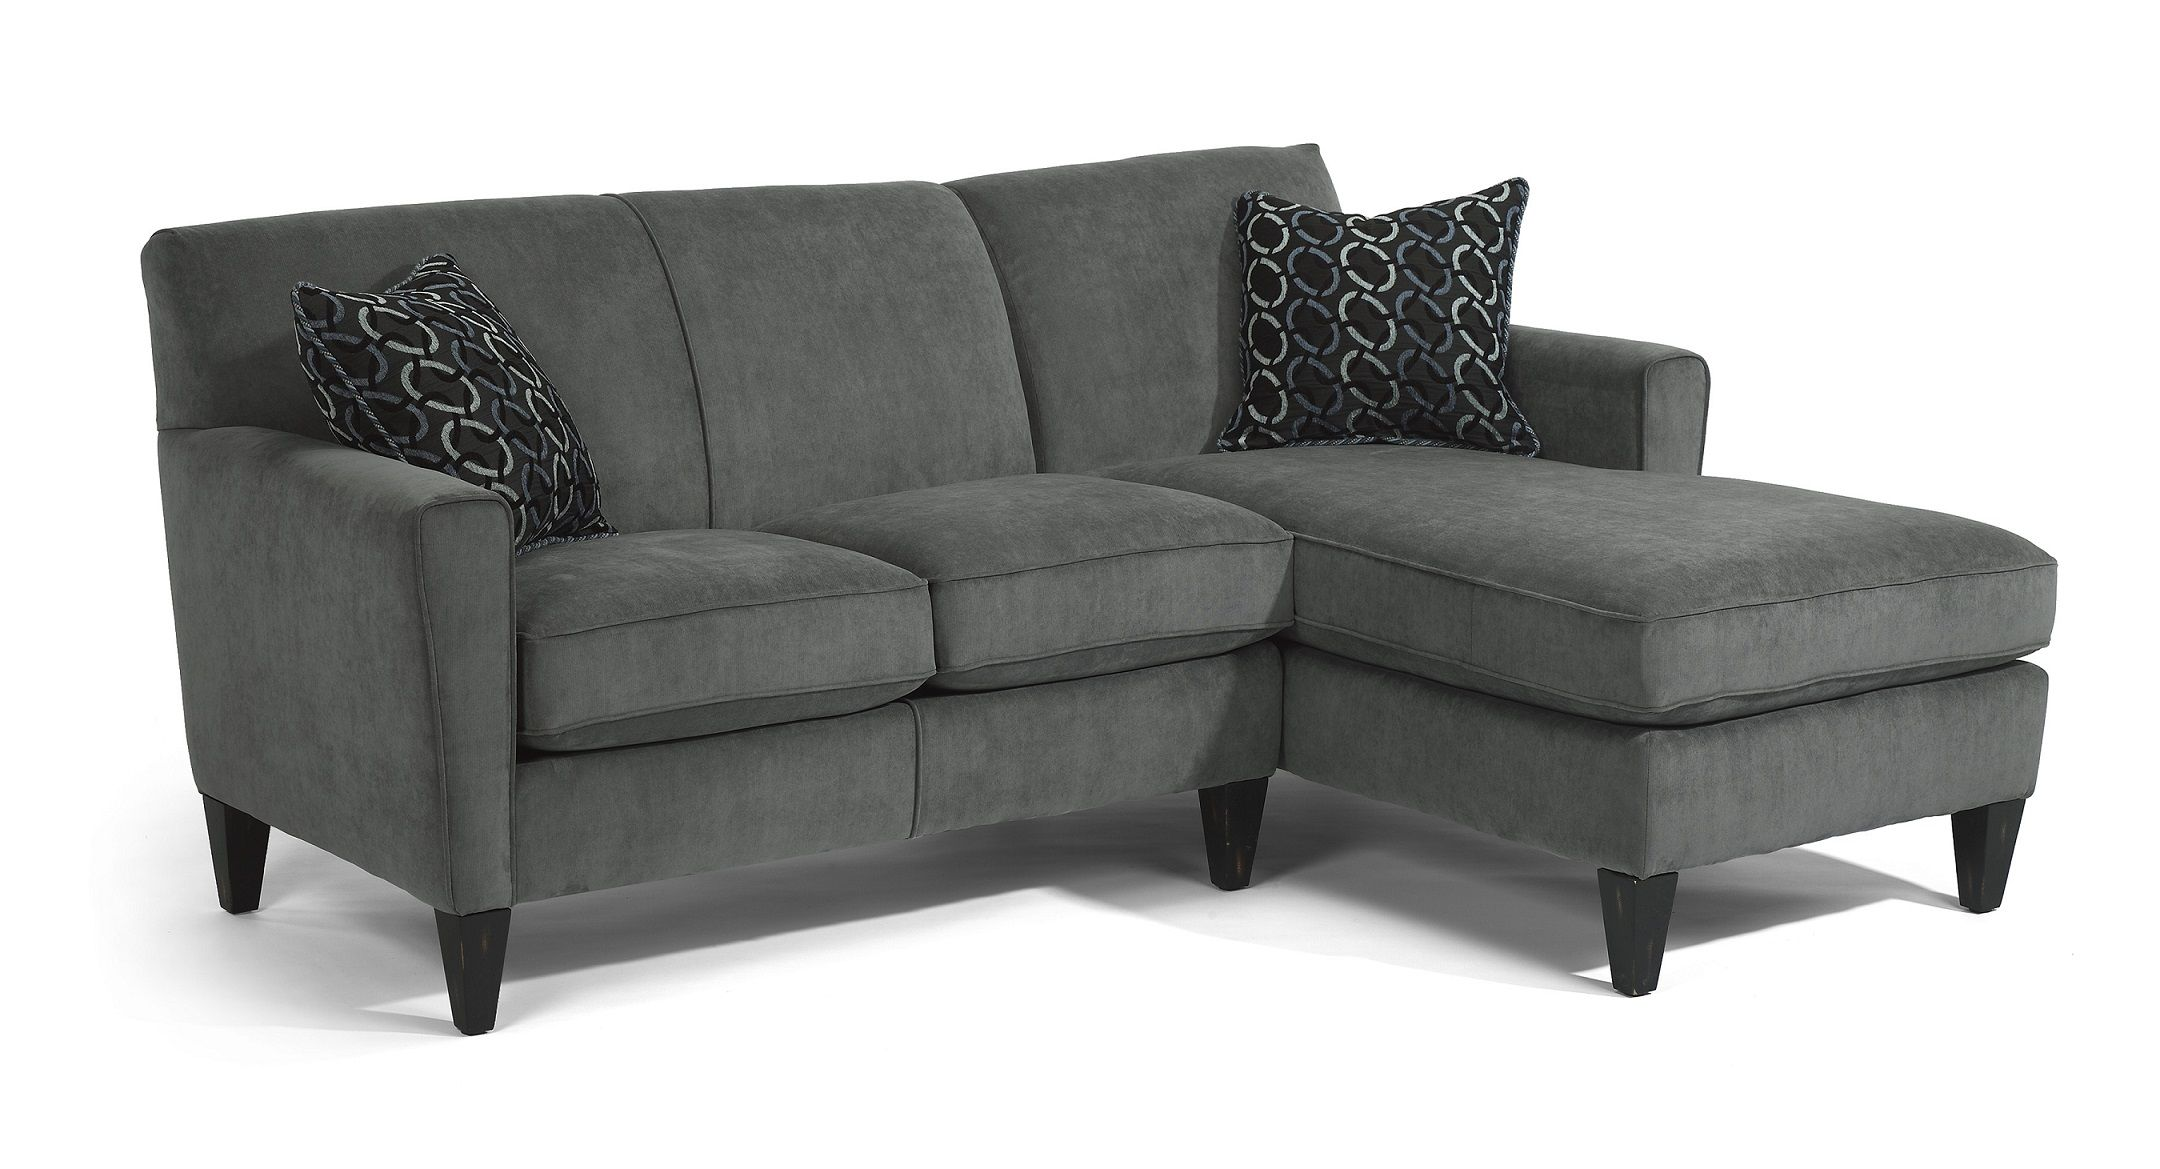 Stupendous Lucas Braden Sectional 5966 Sectionals From Flexsteel At Short Links Chair Design For Home Short Linksinfo